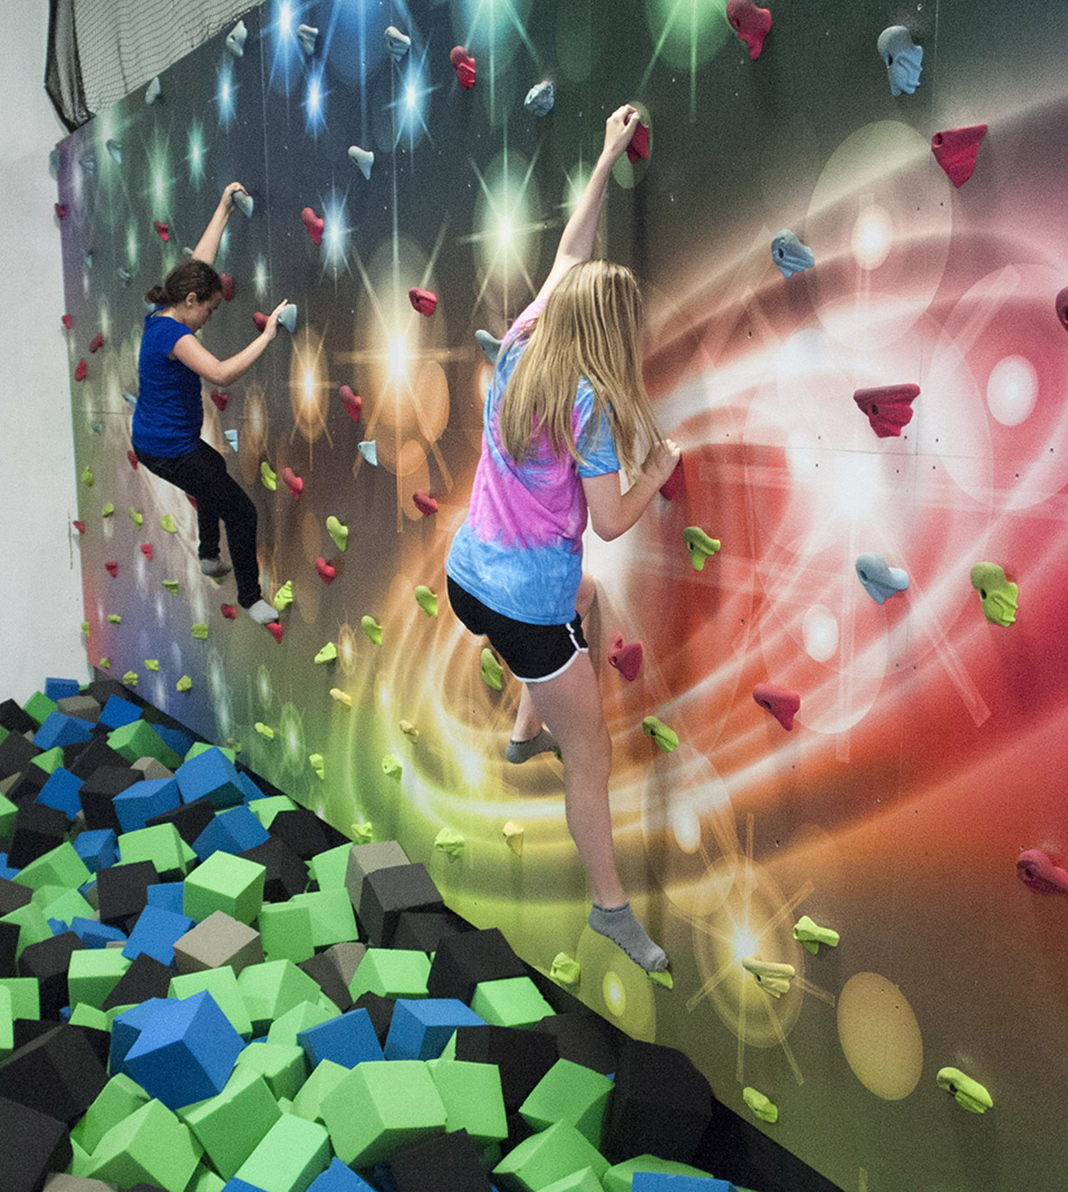 Climbing wall at Zero Gravity Trampoline Park in Mounds View